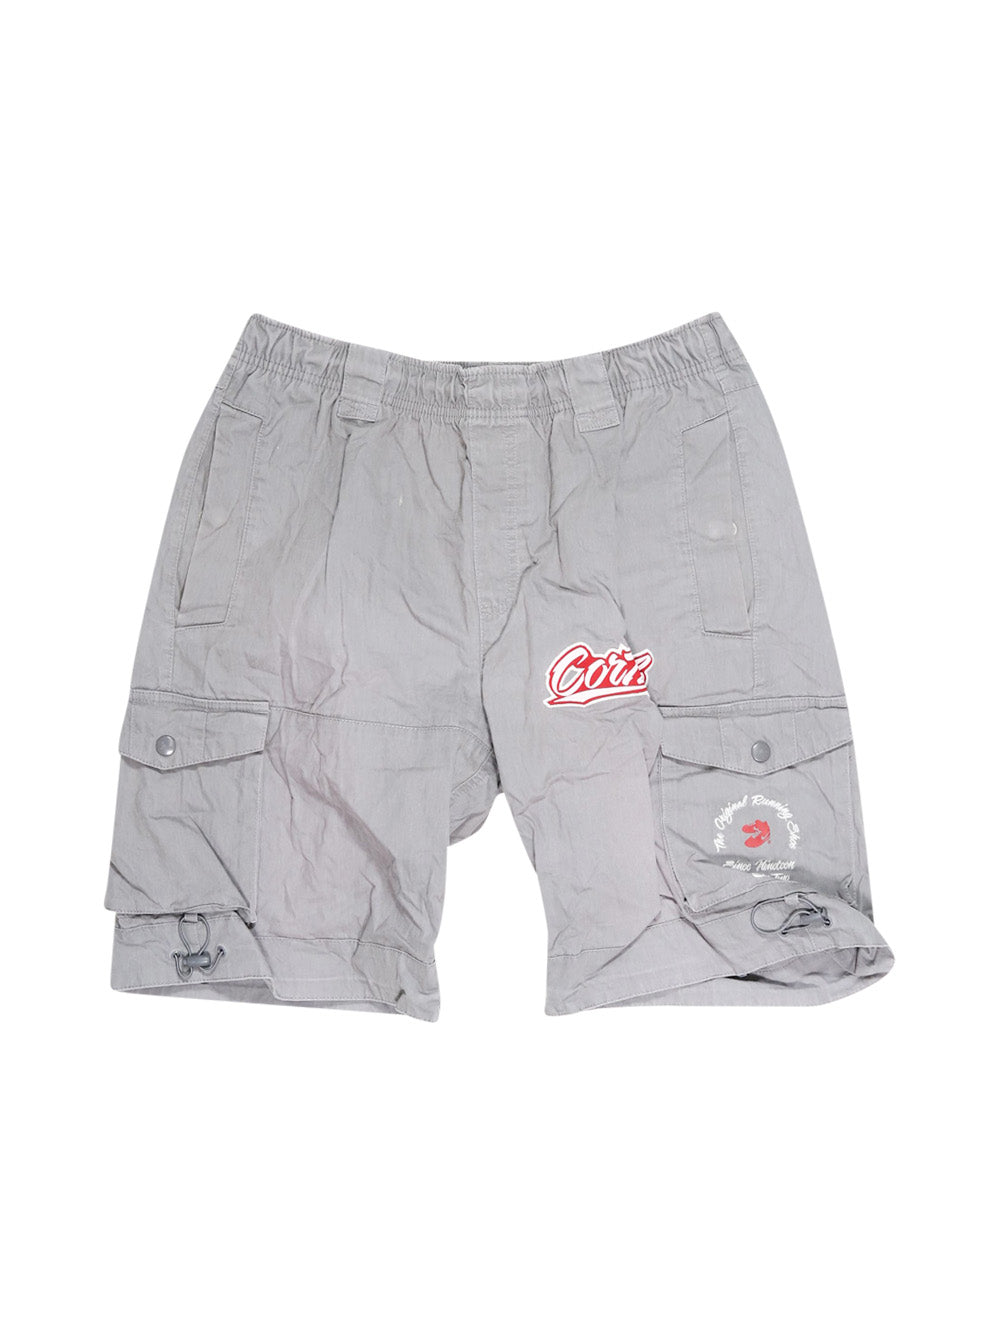 Front photo of Preloved Nike Grey Man's shorts - size 38/M